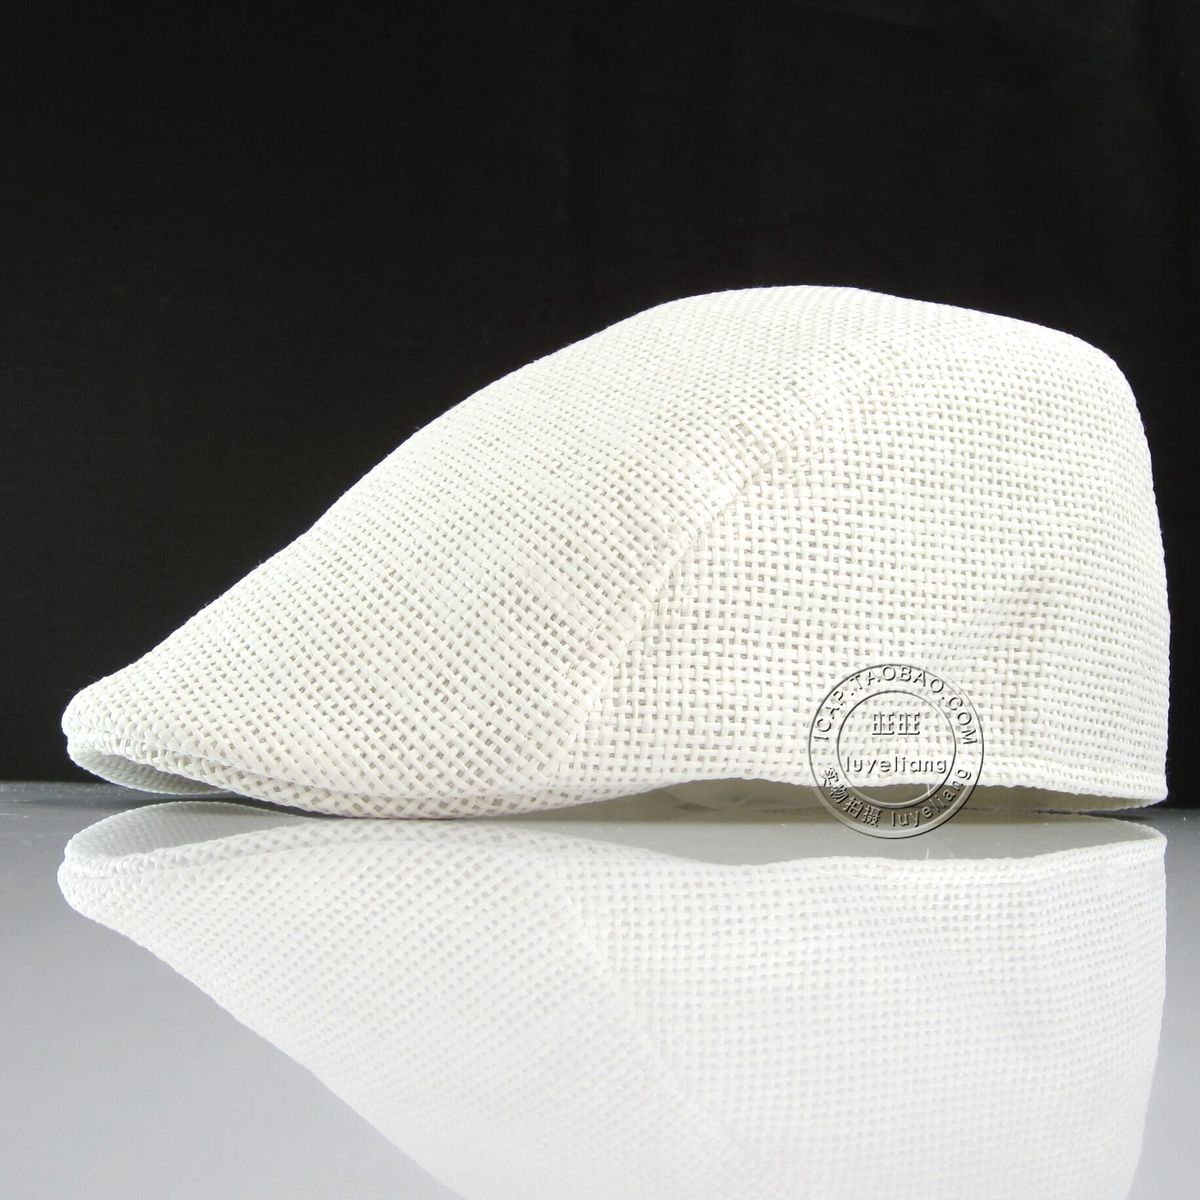 Straw Gatsby Cap Adult Summer Sunshade Berets Cool Newsboy Caps Casual Ivy Hat